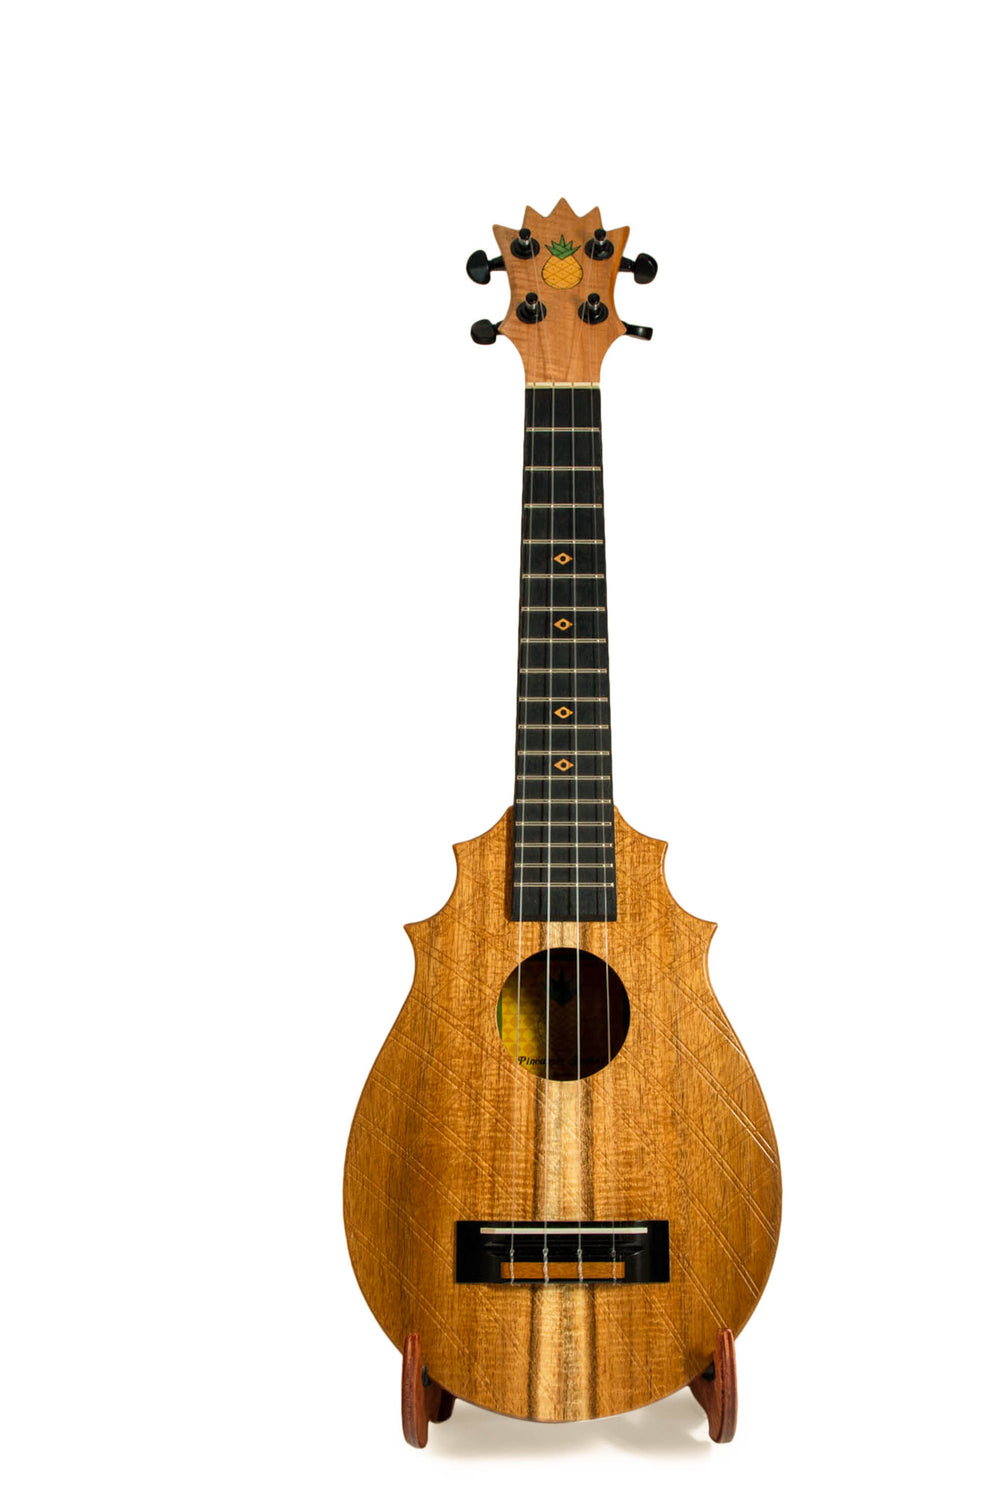 "UkeSA Pineapple Sunday Opio Concert Ukulele Solid Acacia ""Aurelius"" by Pops KoAloha (DISCOUNTED $387)"